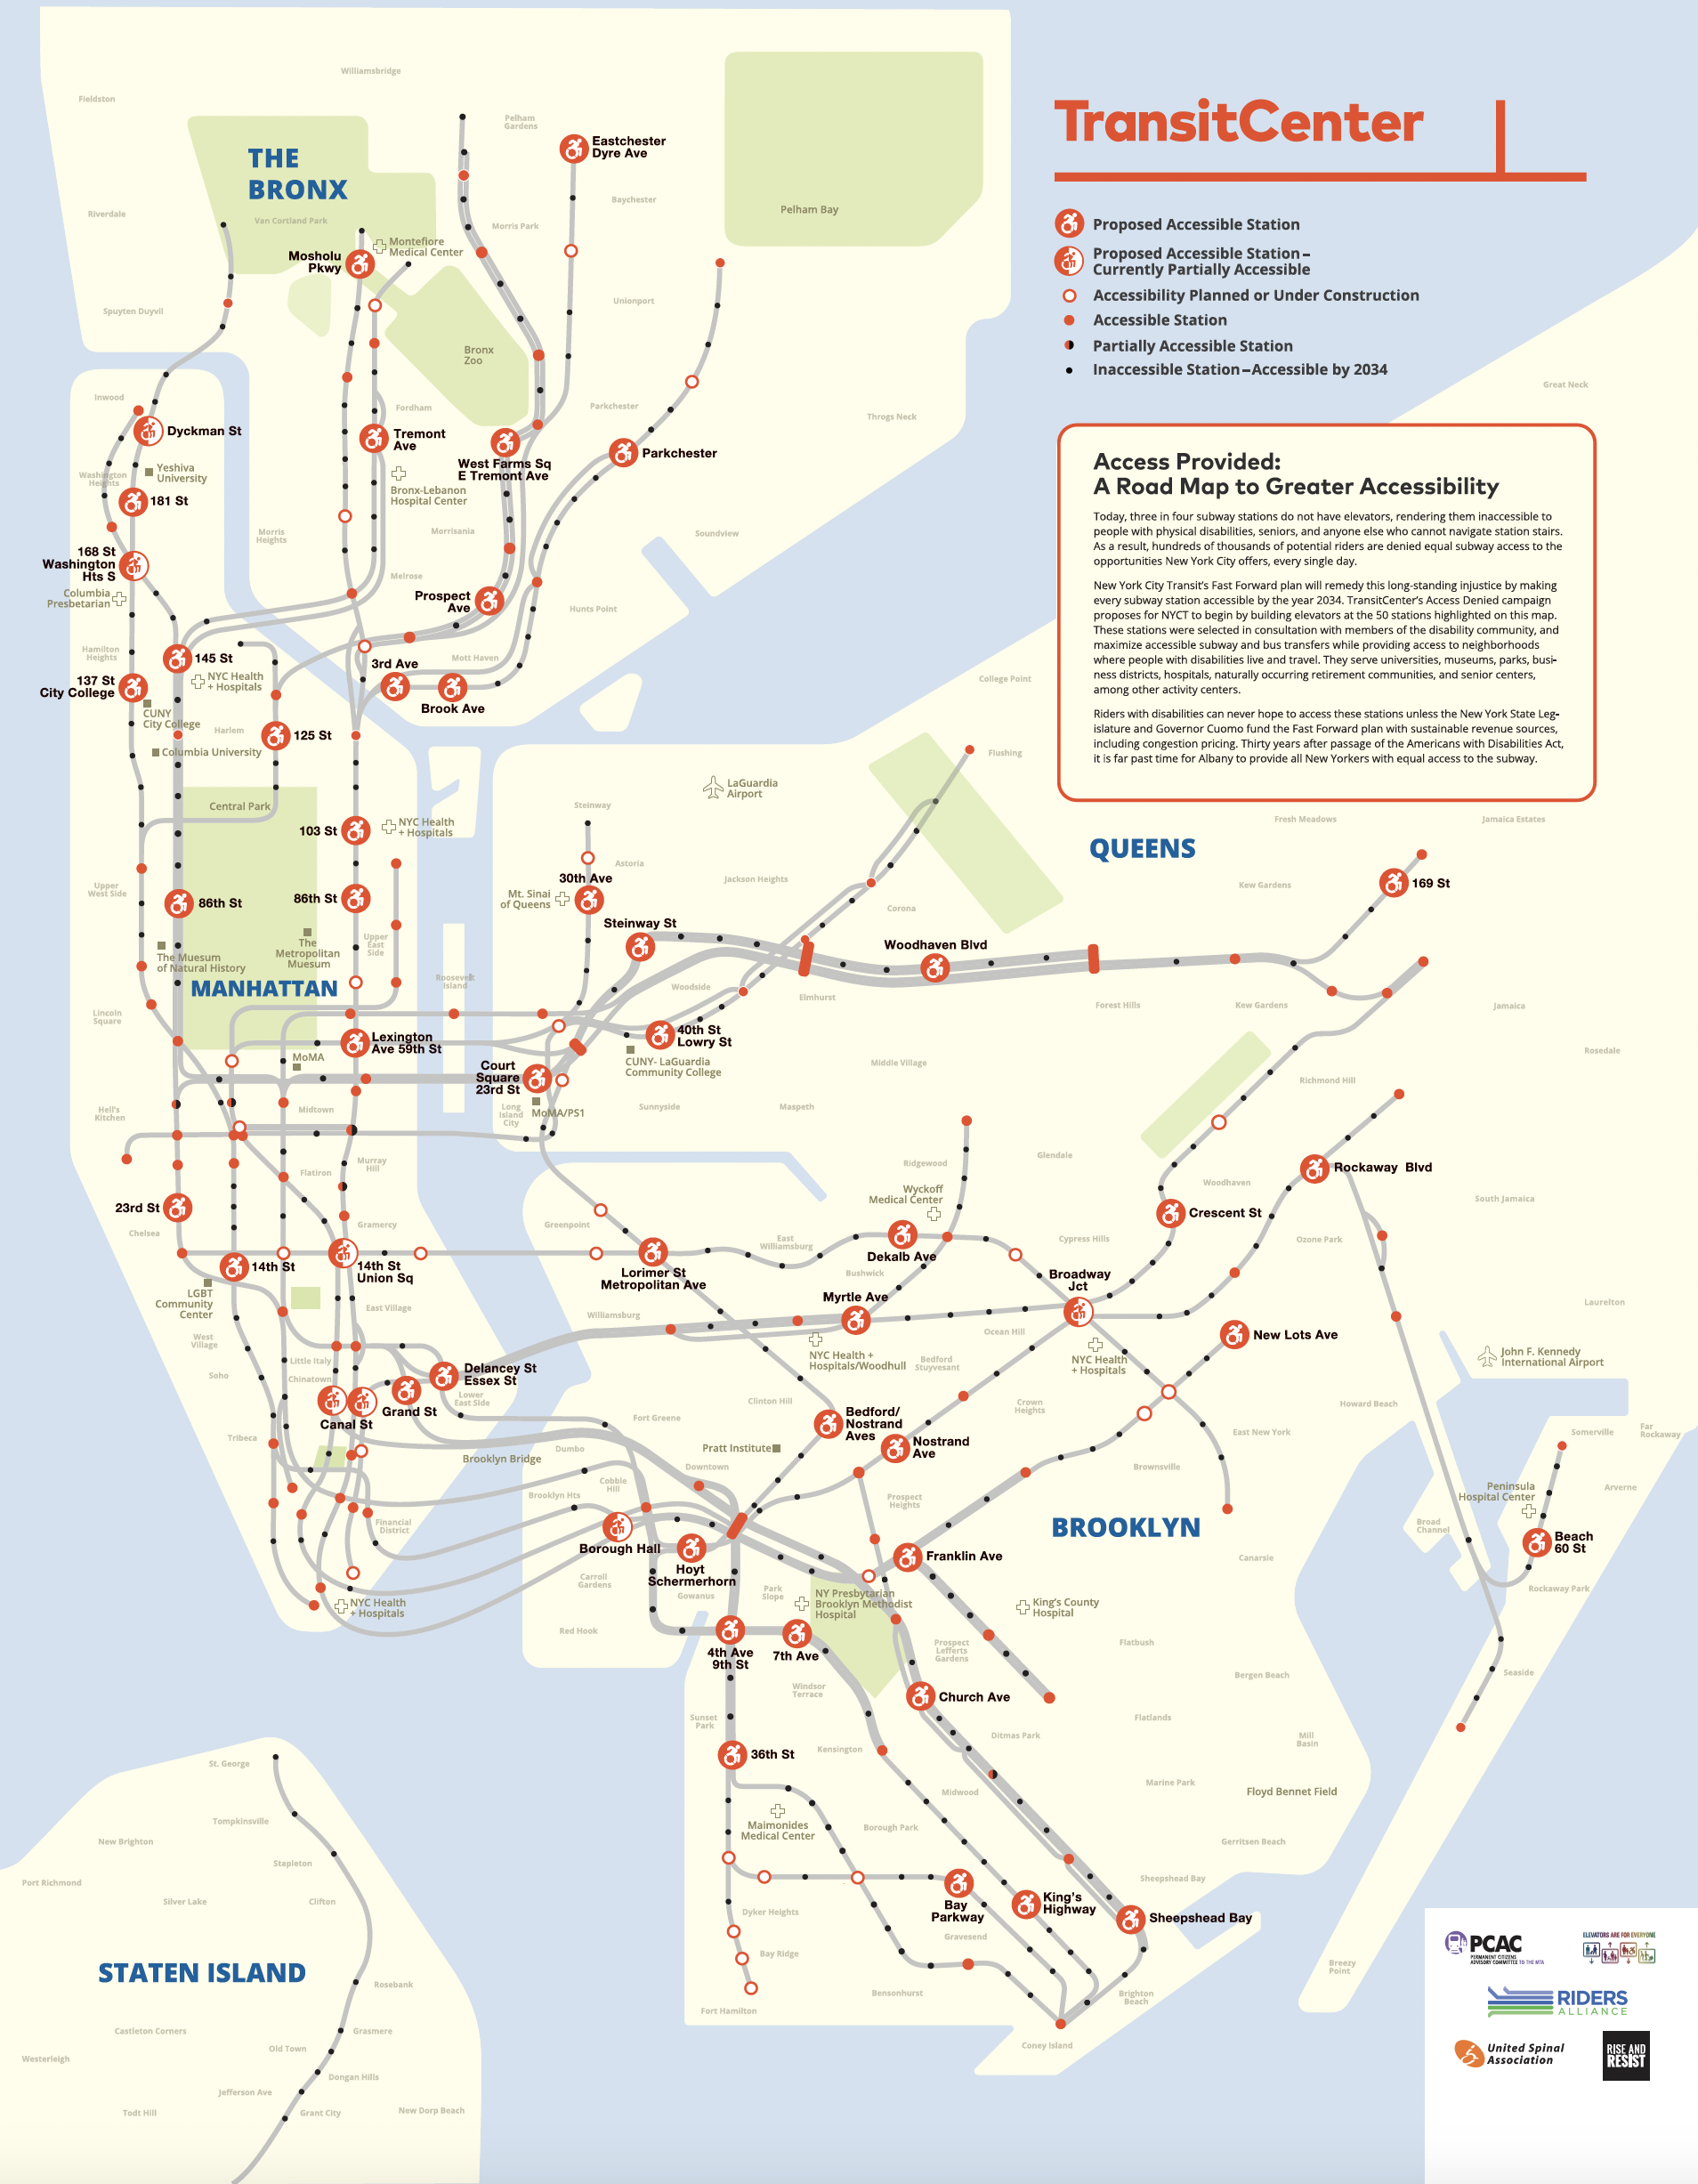 Subway Map 137 Hudson Street.Transitcenter Maps Out The Next 50 Subway Stations That Should Be